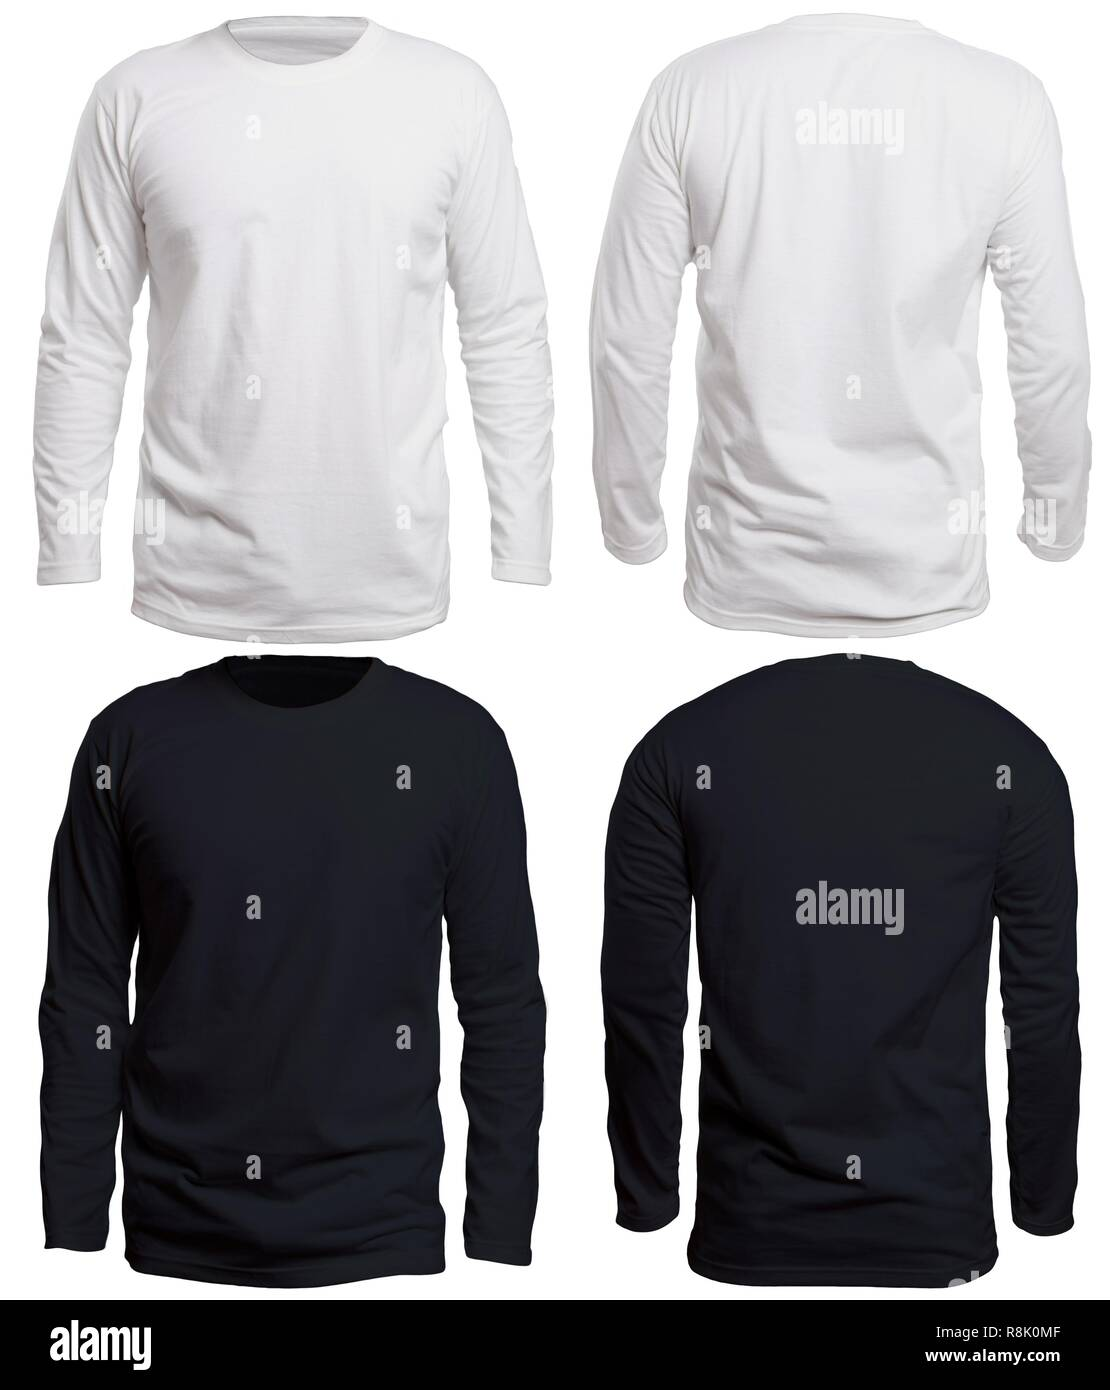 Blank Long Sleeve Shirt Mock Up Template Front And Back View